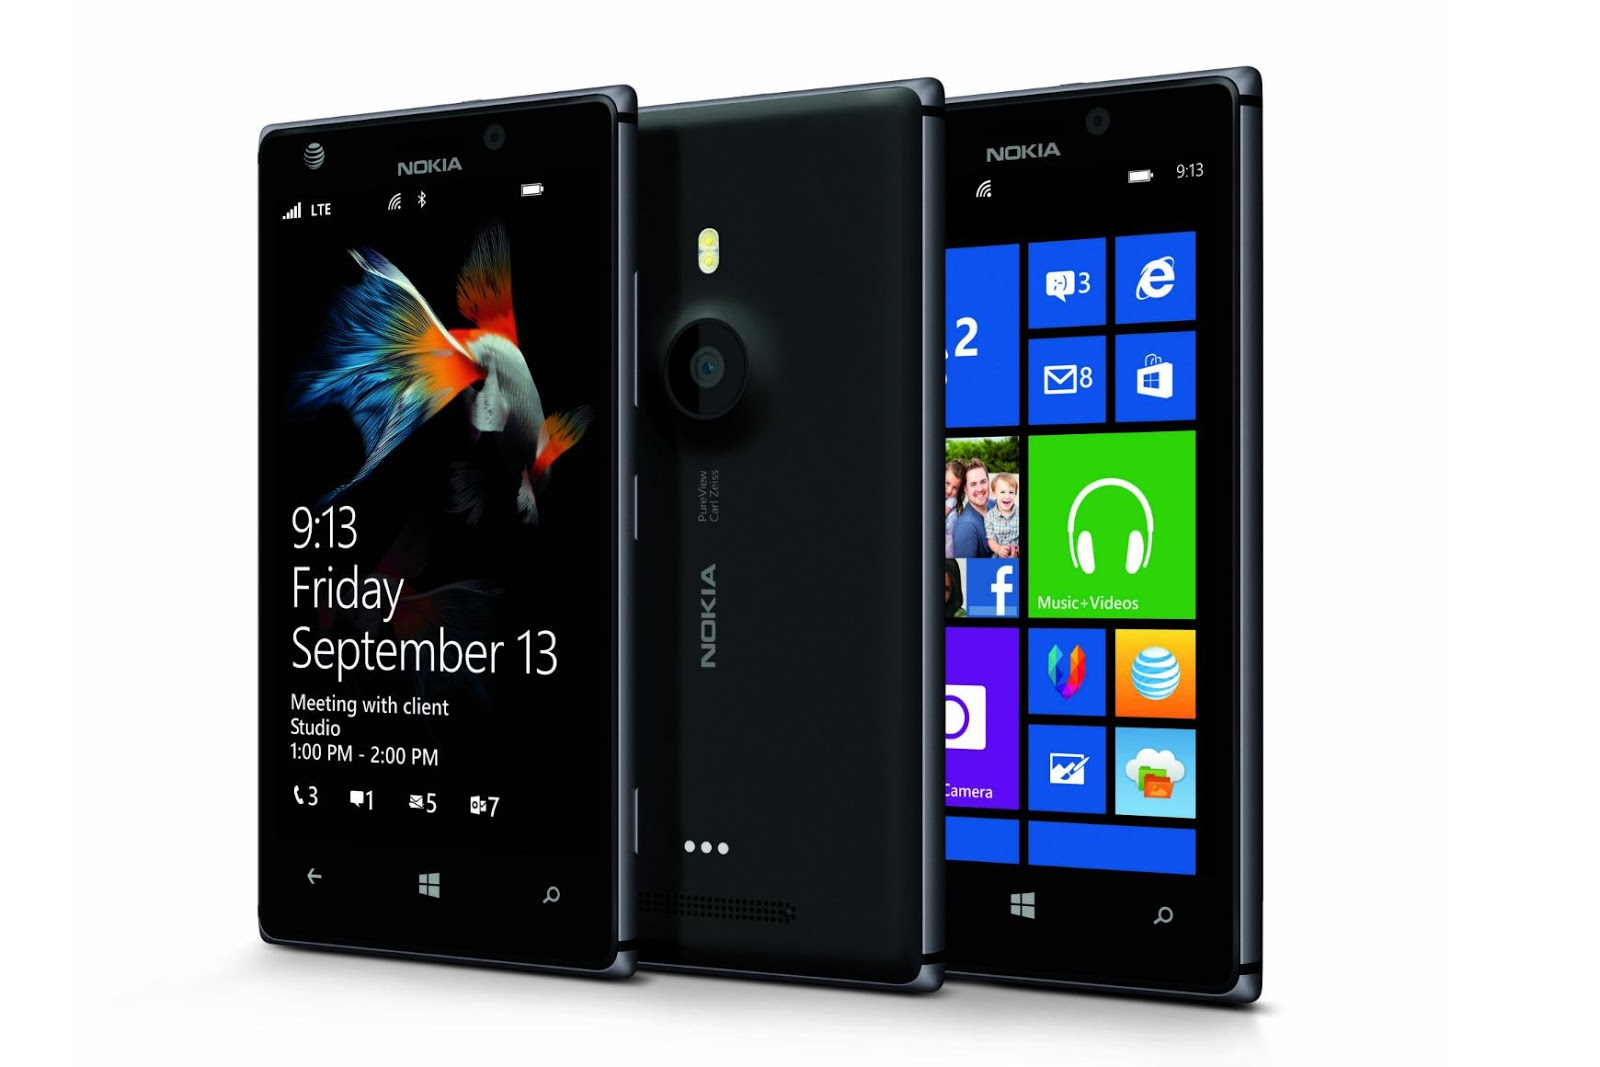 Lista de todos celulares com windows phone - OArthur.com